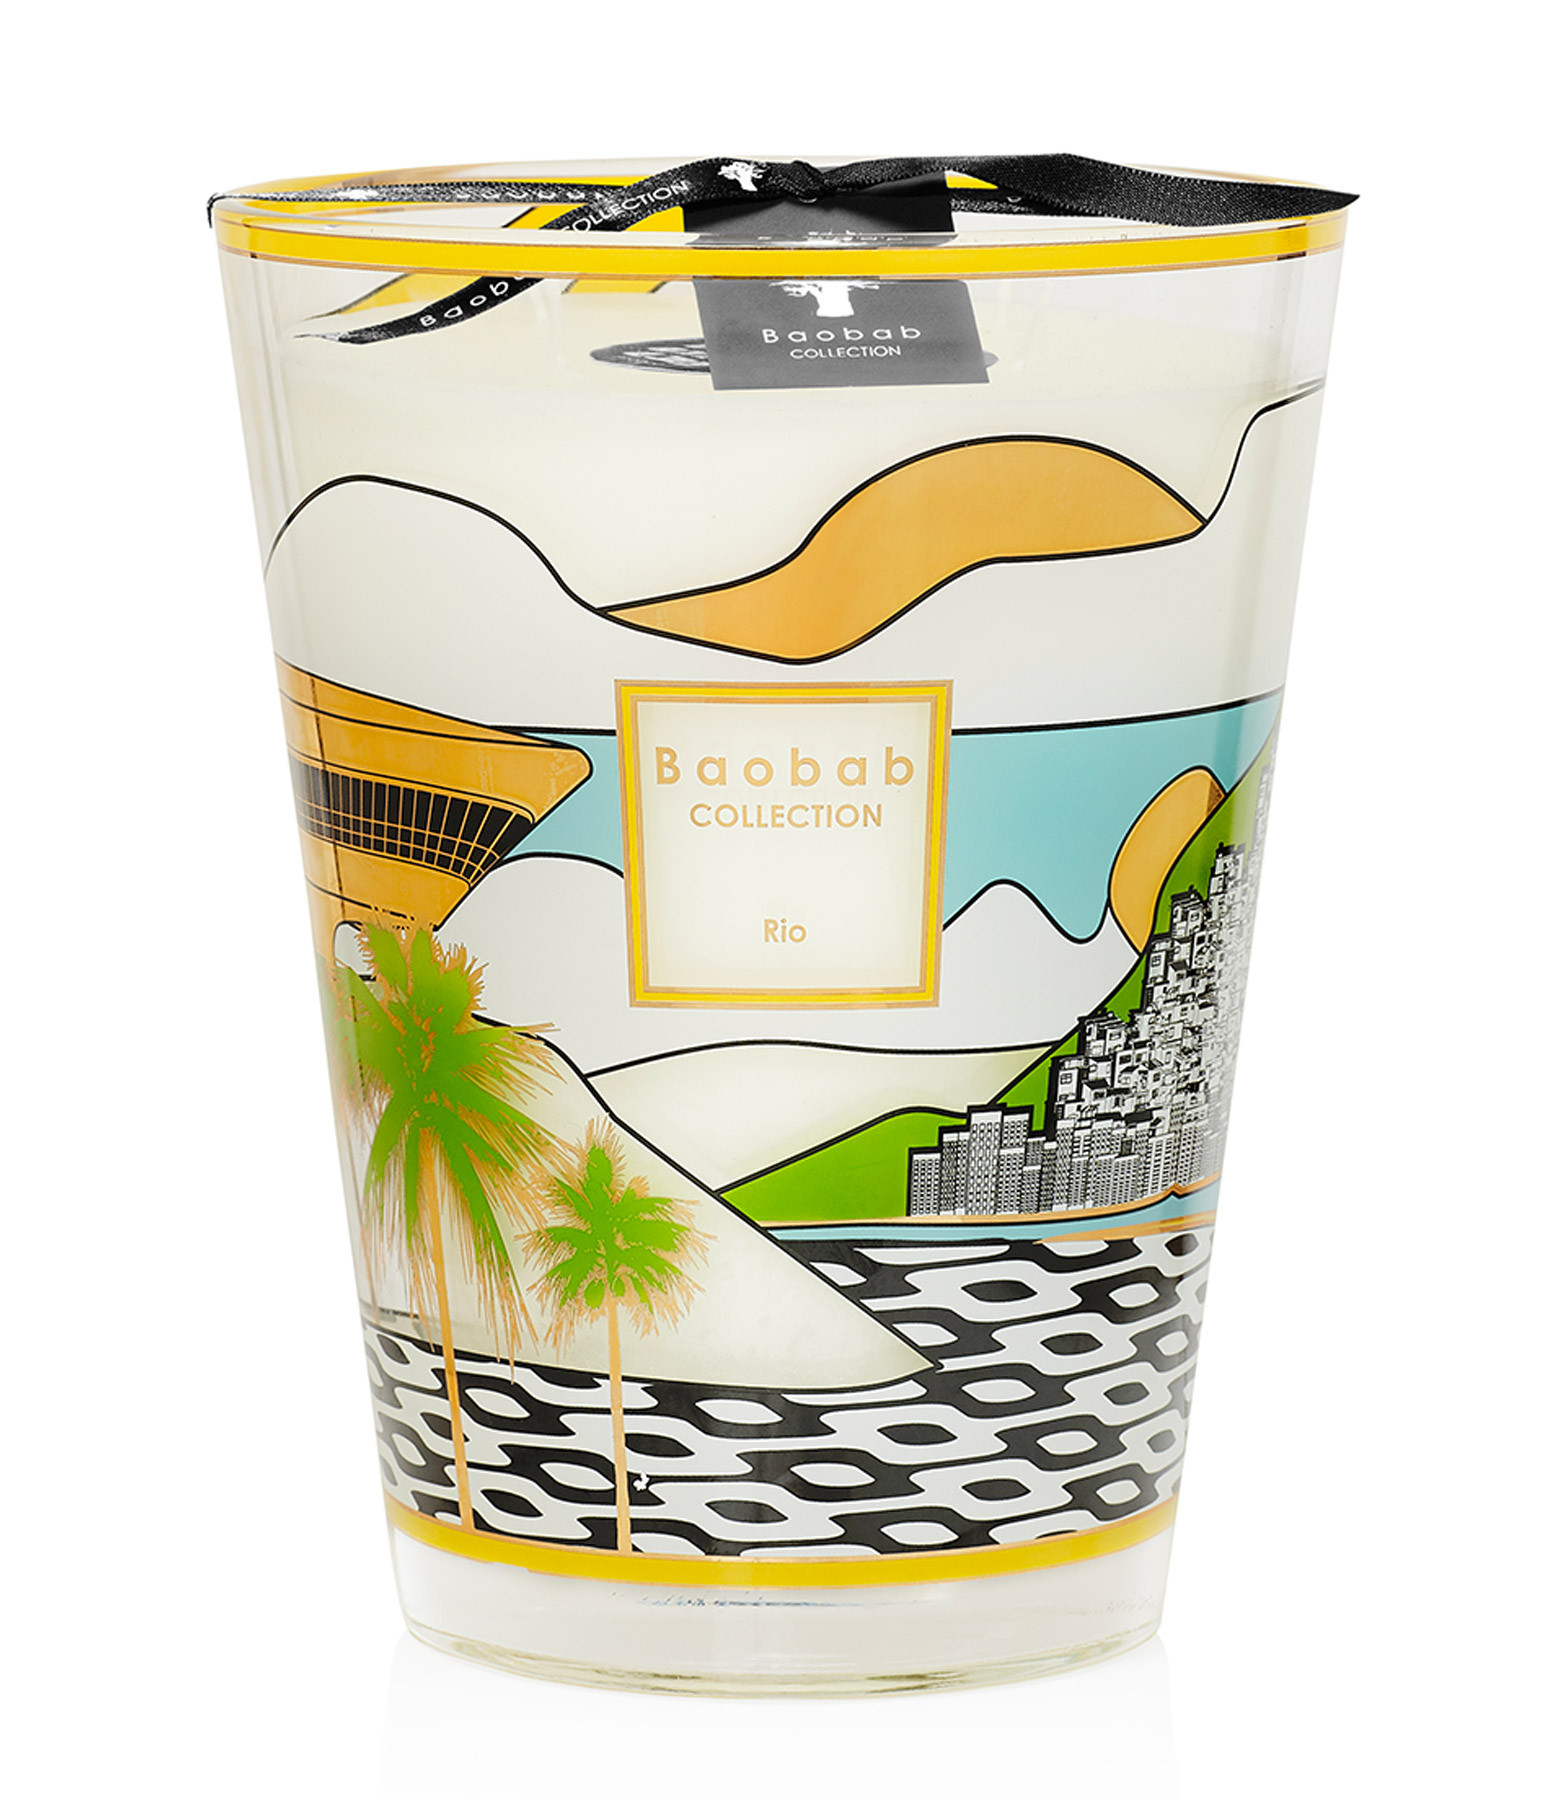 BAOBAB COLLECTION - Bougie Max 24 Cities Rio